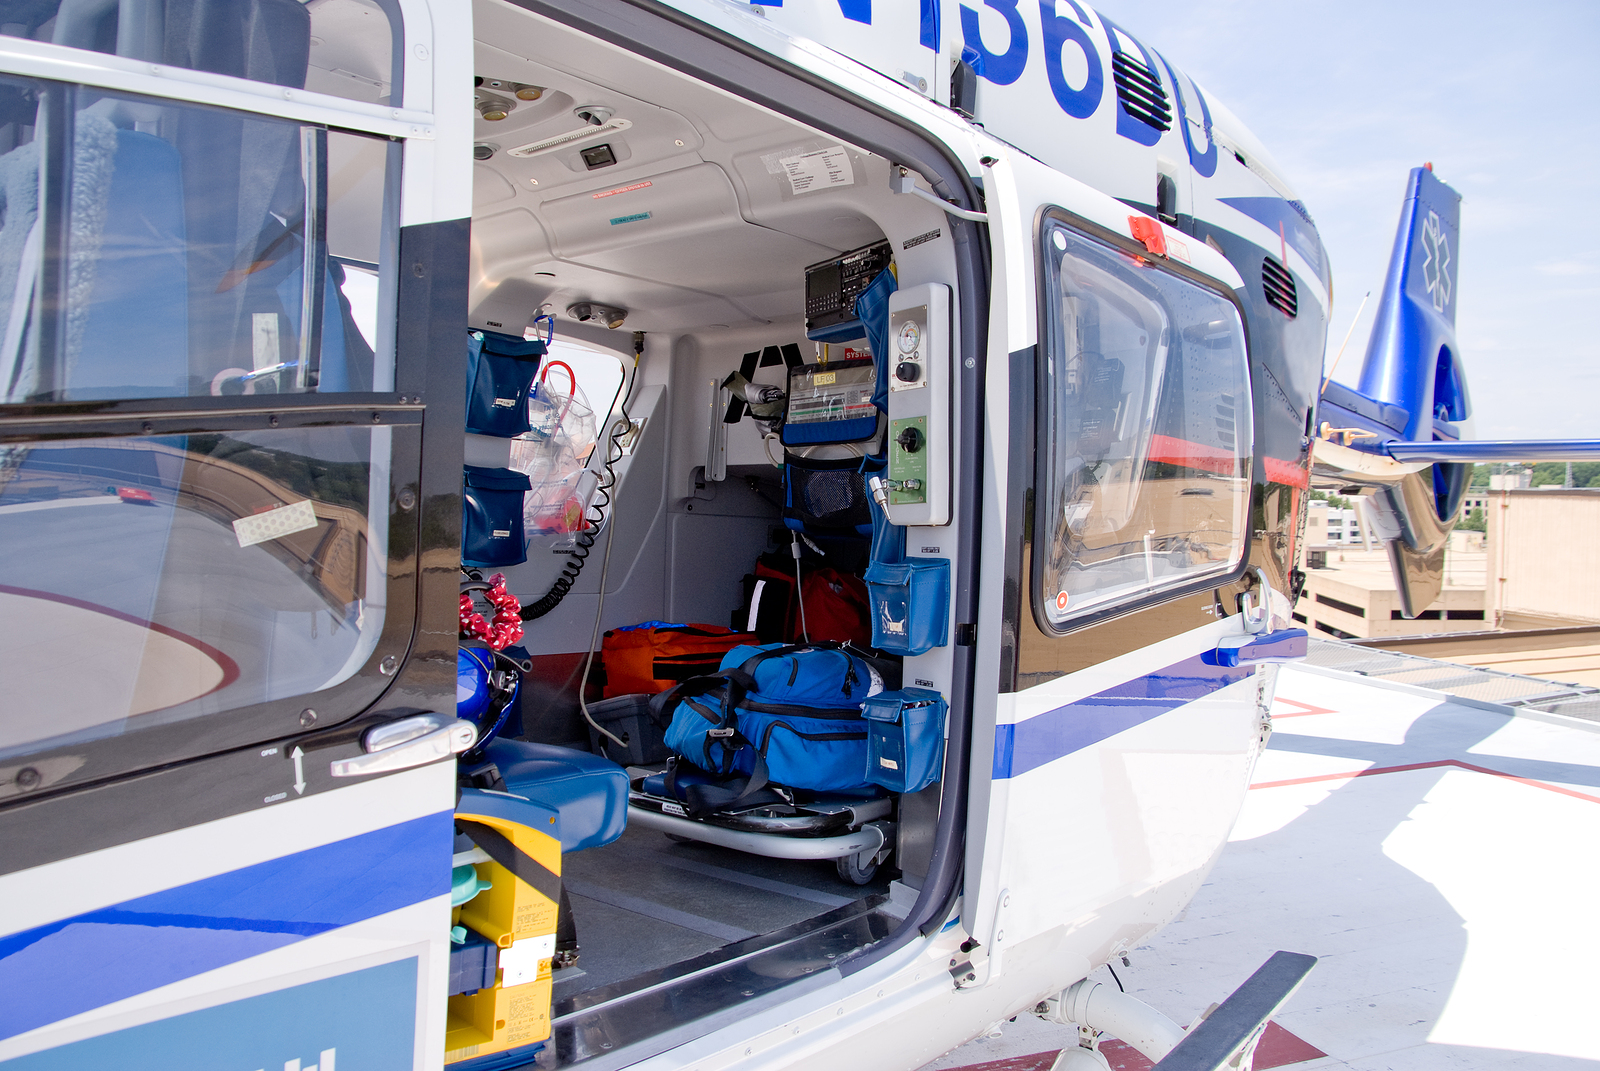 ems helicopter pilot Find ems helicopter pilot jobs in kentucky search for full time or part time employment opportunities on jobs2careers.